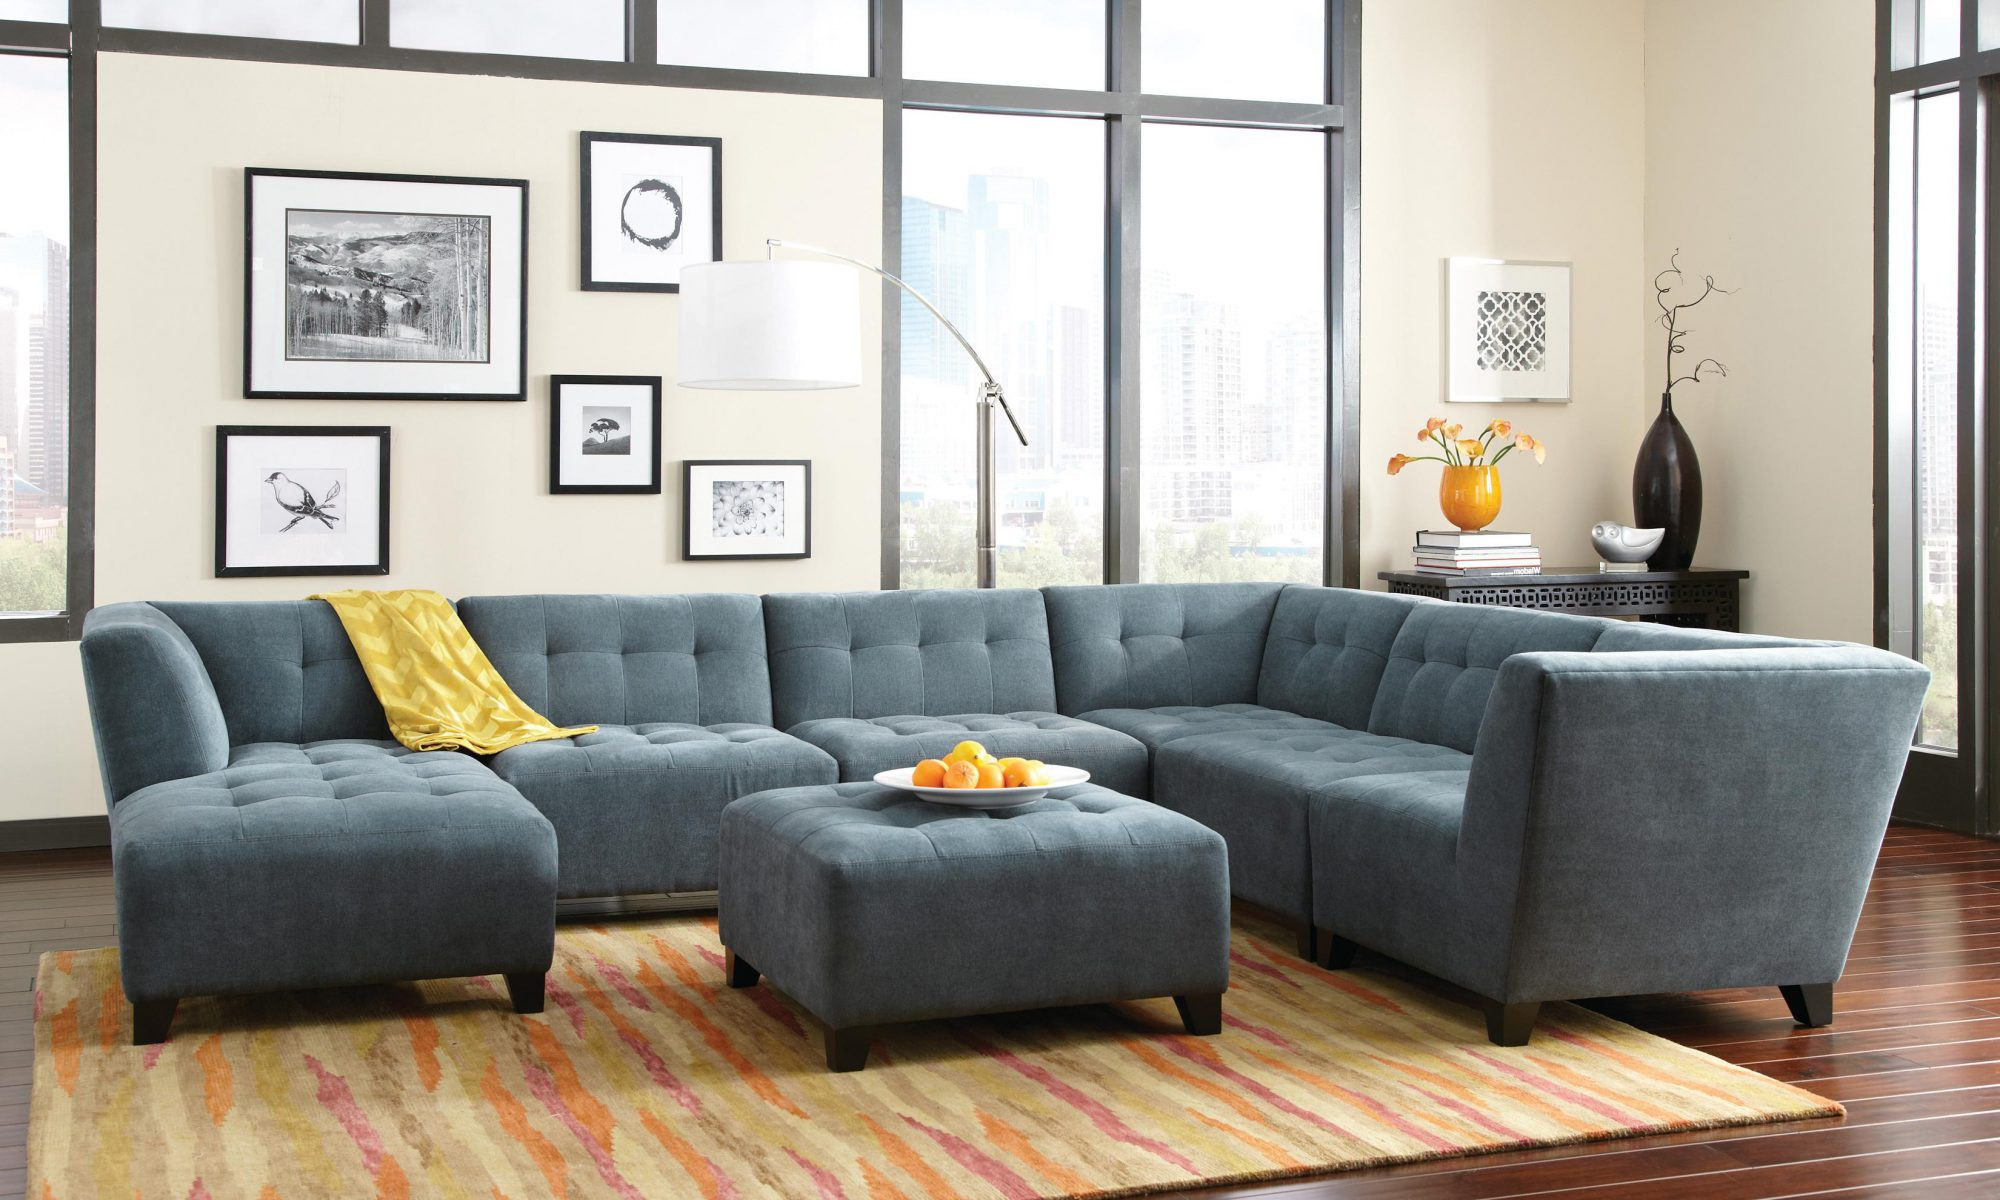 Rooms and Rest Blog – Sitting pretty in a world of furniture